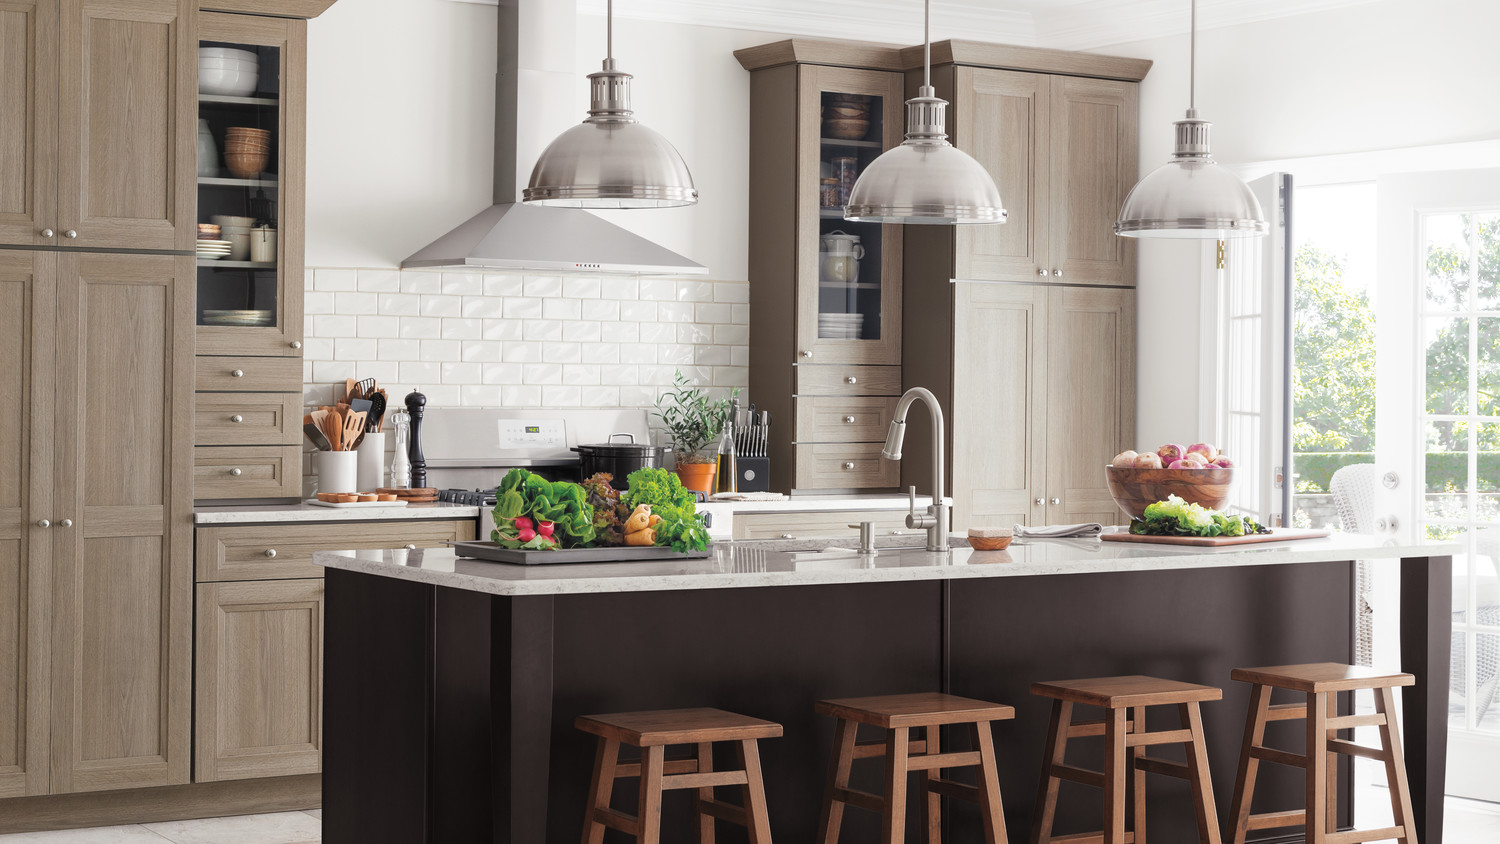 video martha stewart shares her kitchen design inspiration martha stewart